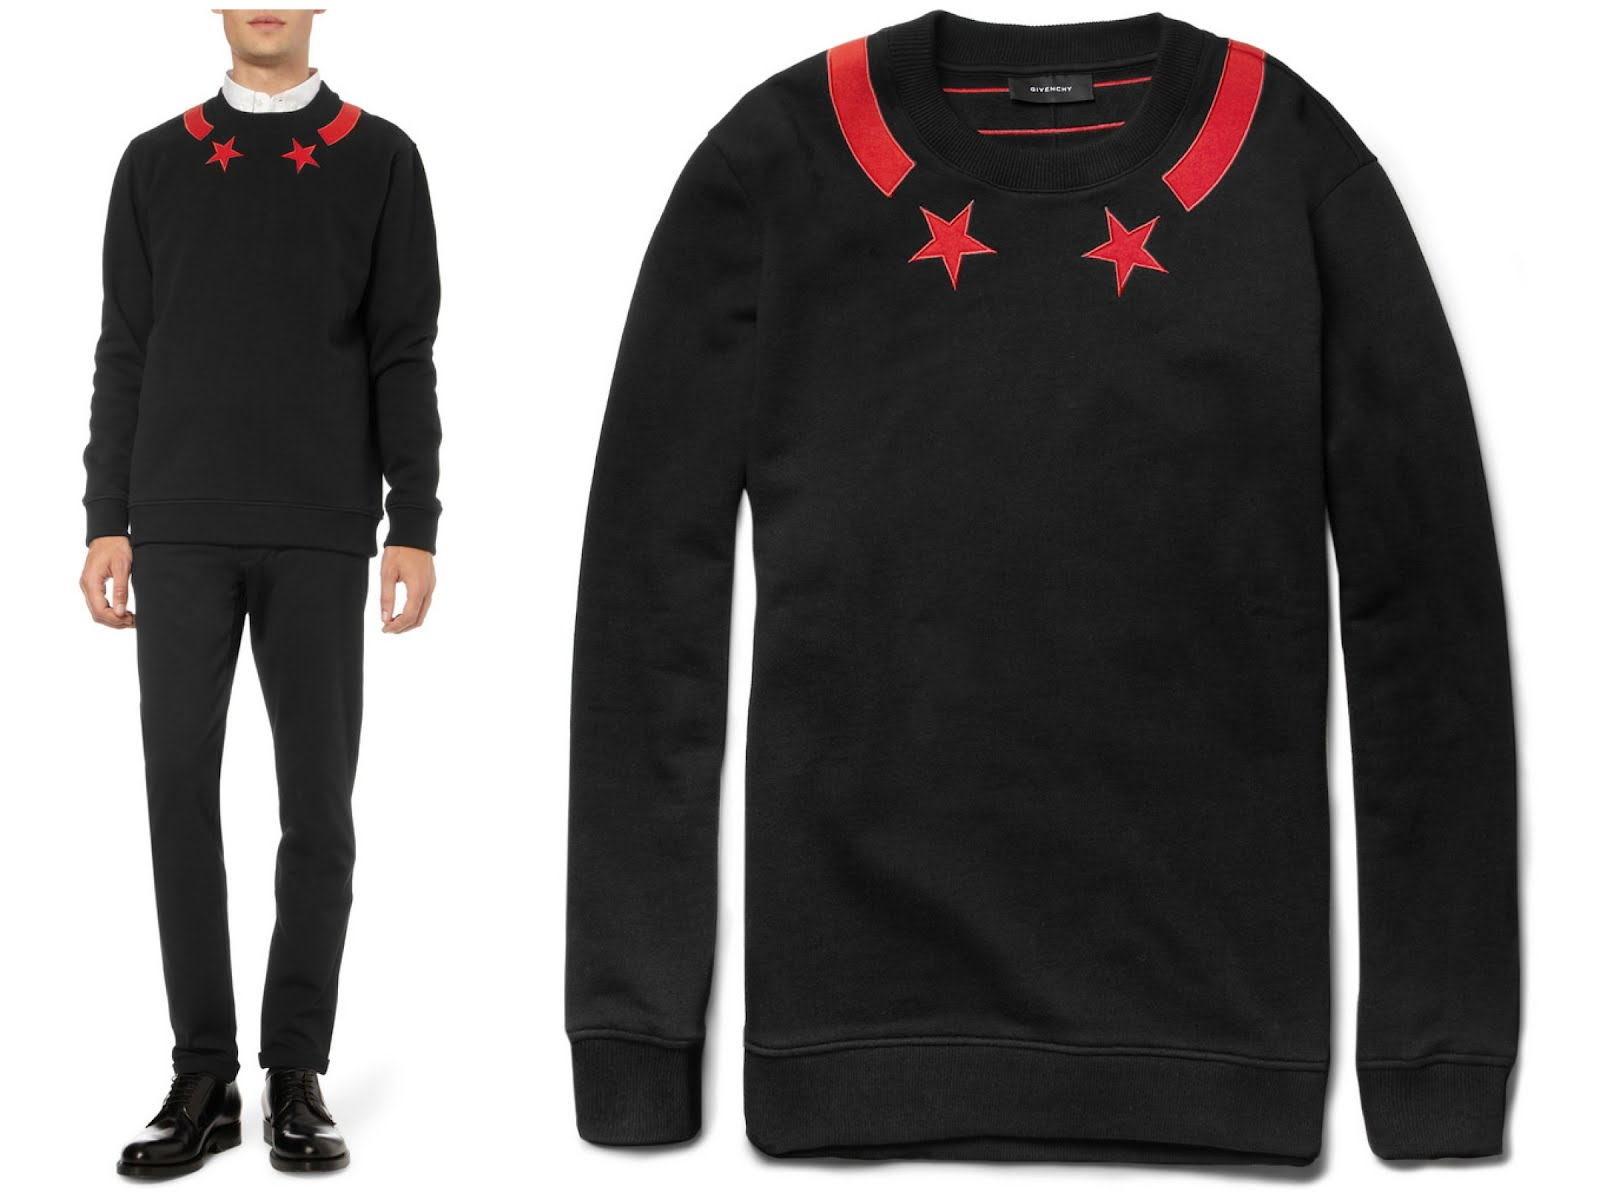 00O00 London Menswear Blog Givenchy Menswear Fall Winter 2012 stars sweater jersey